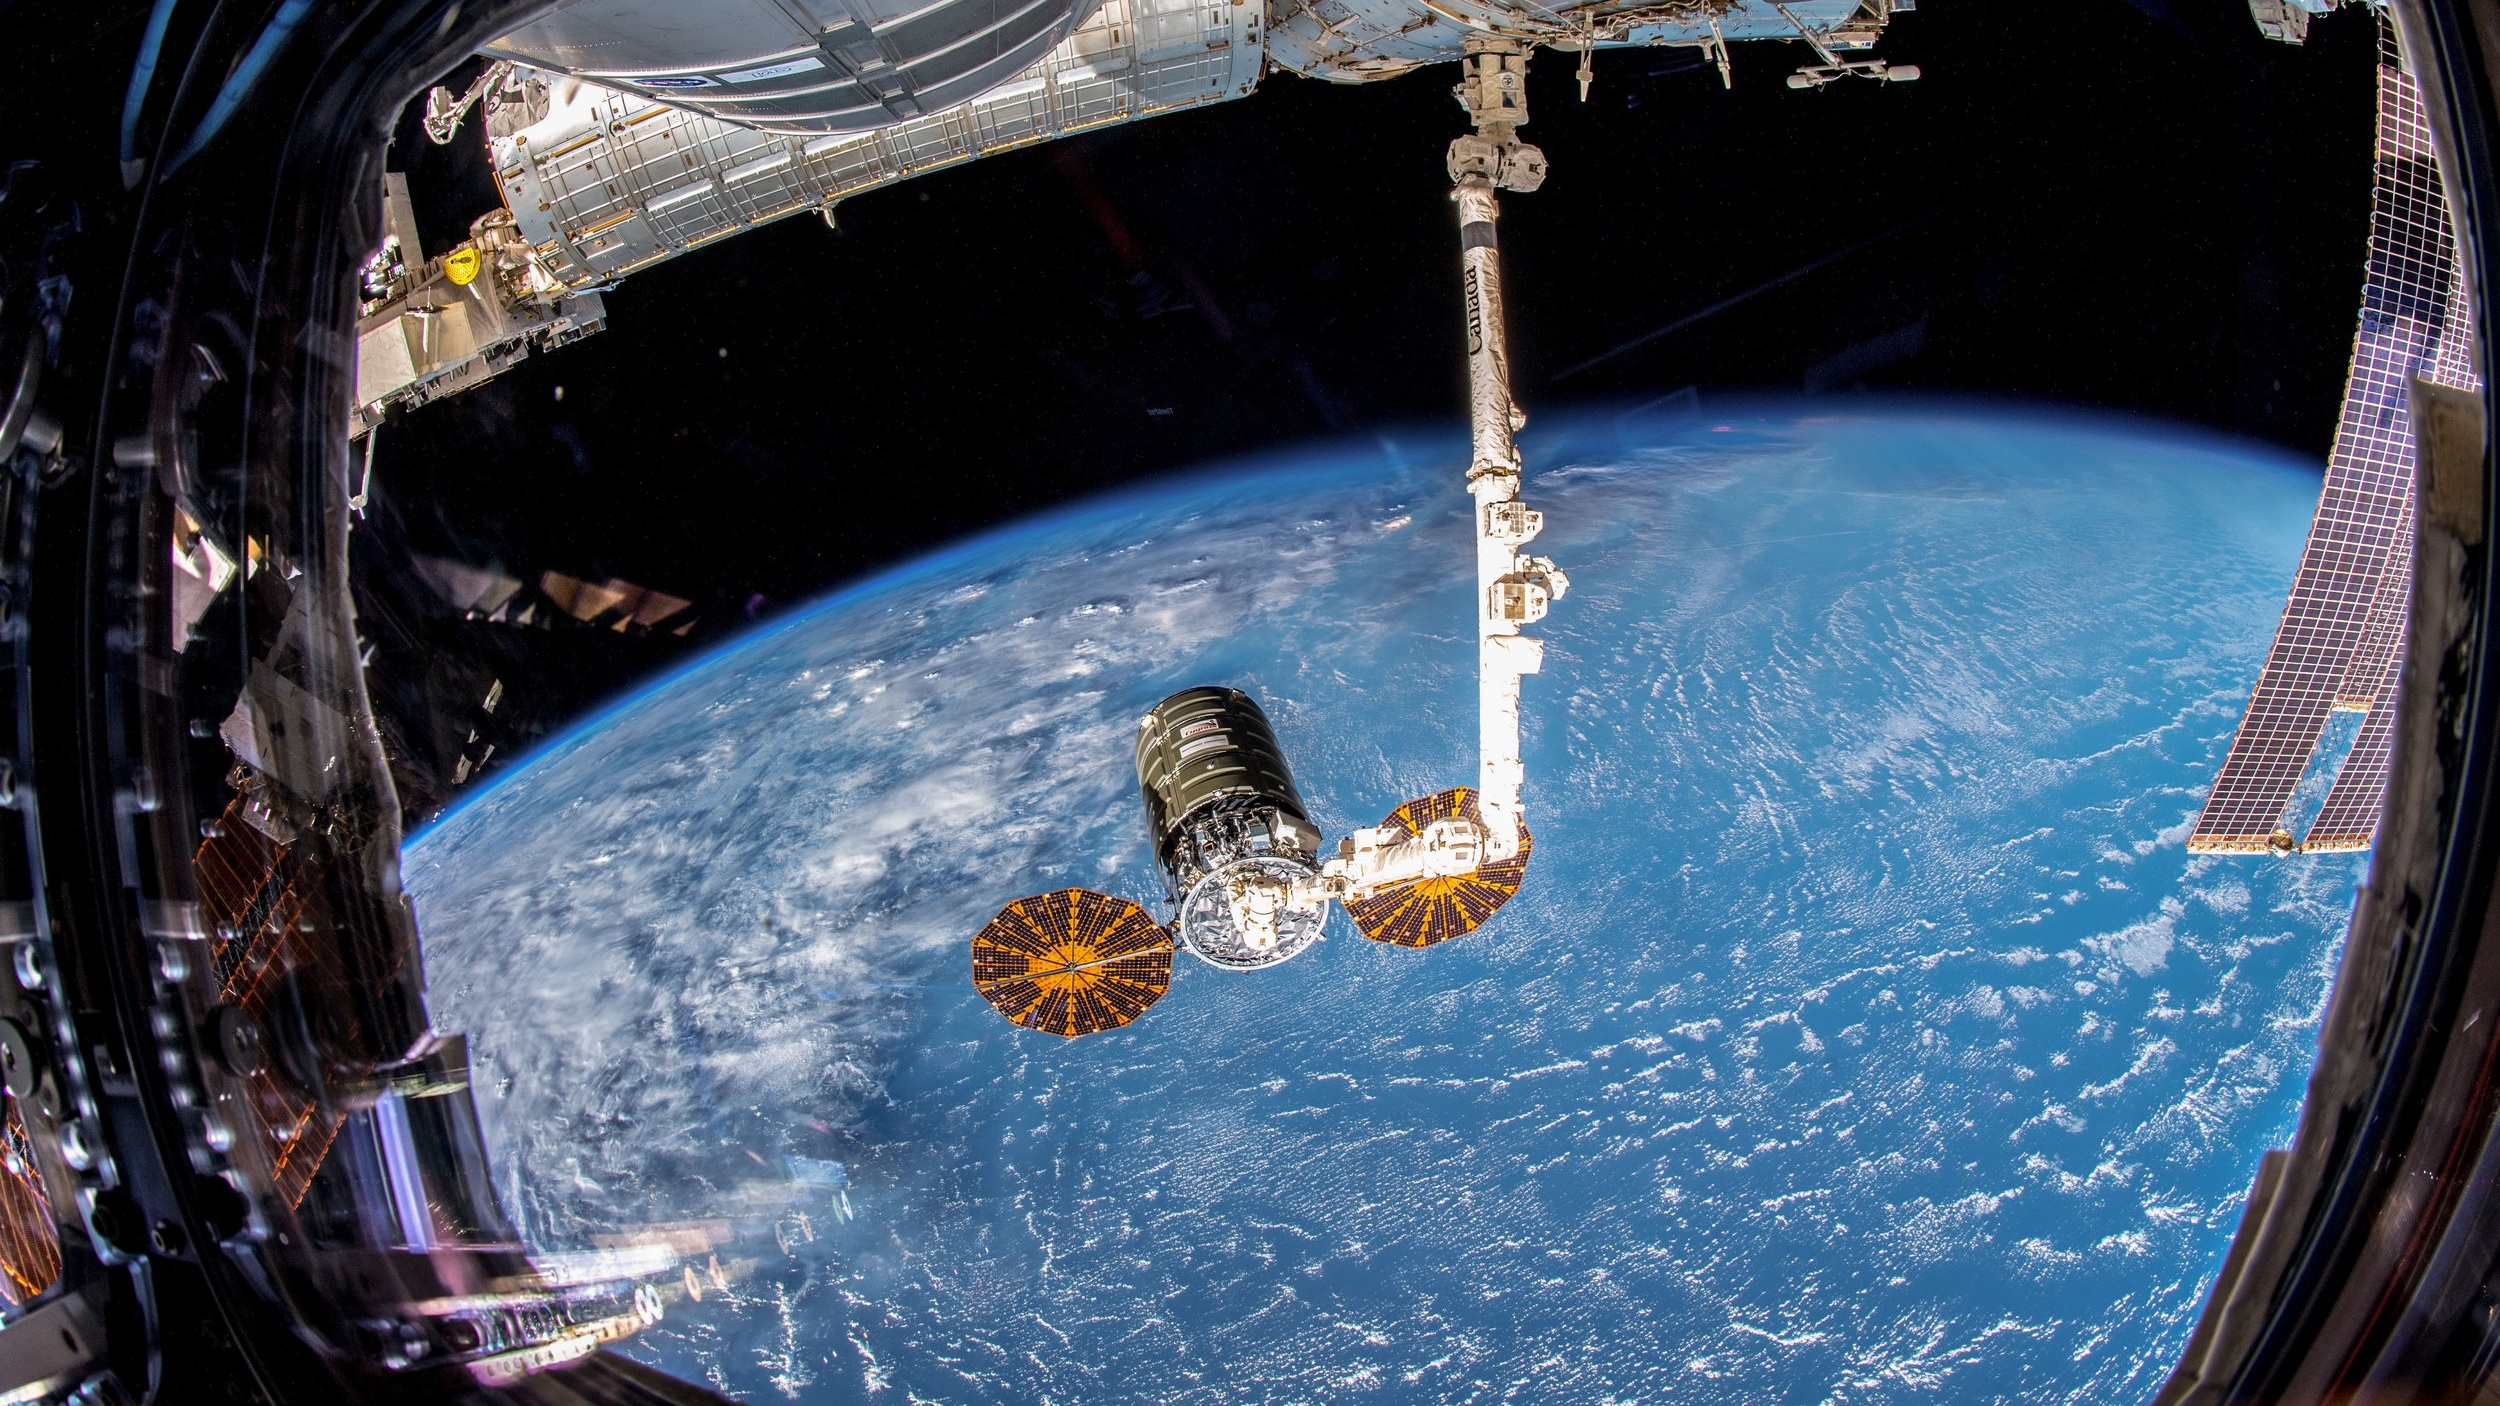 Cygnus as seen when it was captured by the Expedition 57 crew using Canadarm2. Credit: NASA